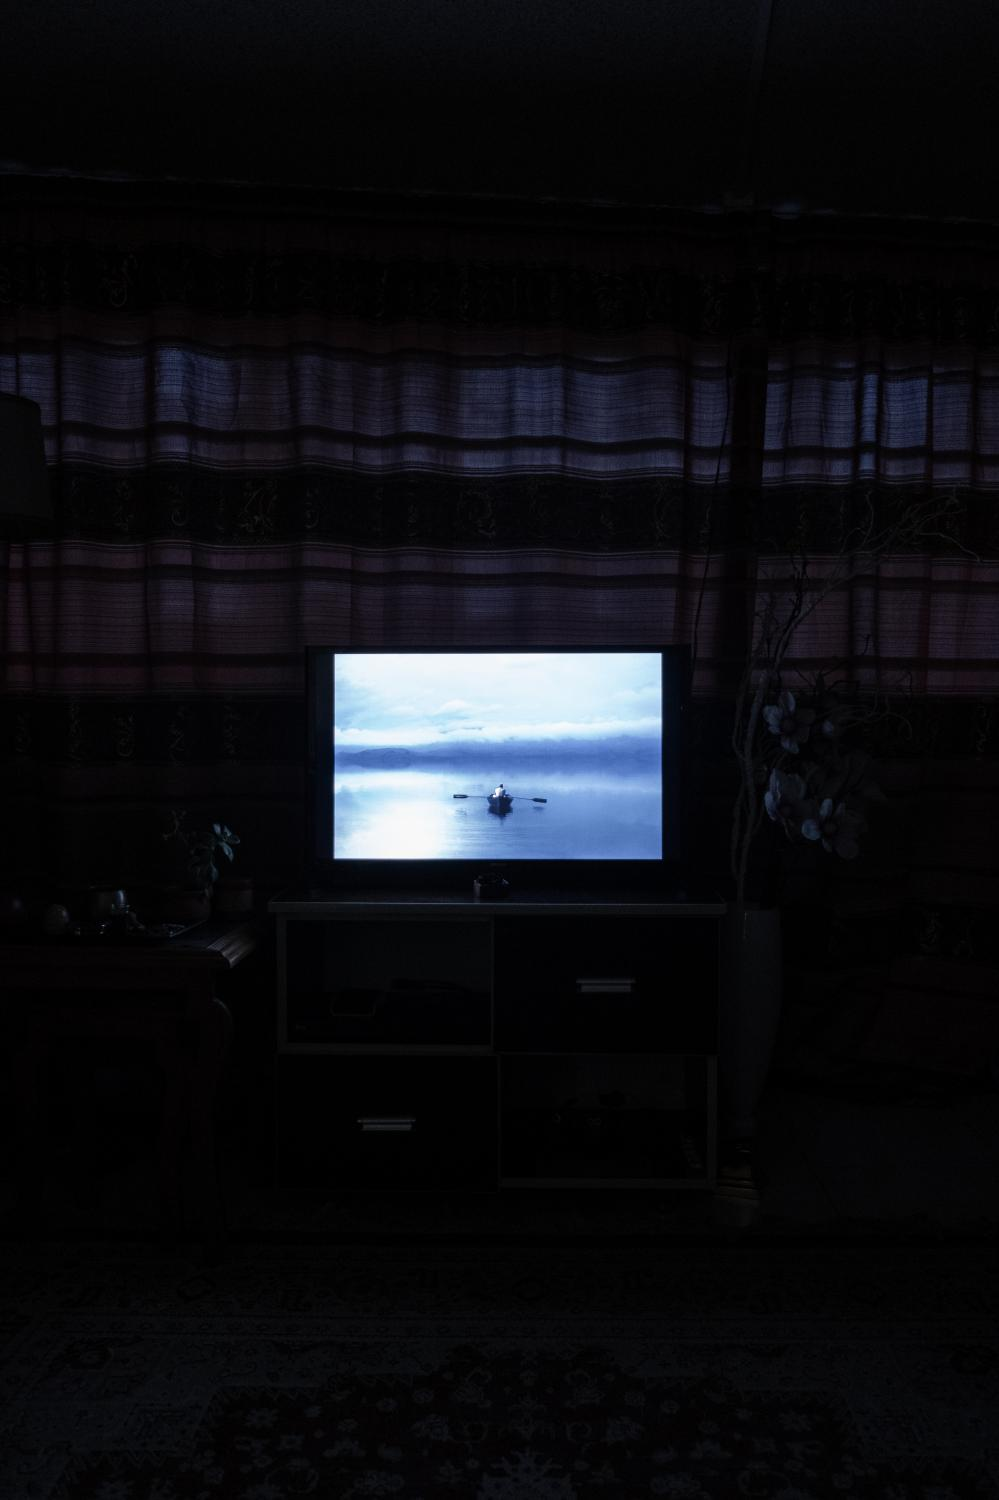 During the quarantine period, I chose to watch the film to forget over time. In the past, I used to watch movies with my friends or family, and that often made me remember my problems and loneliness.